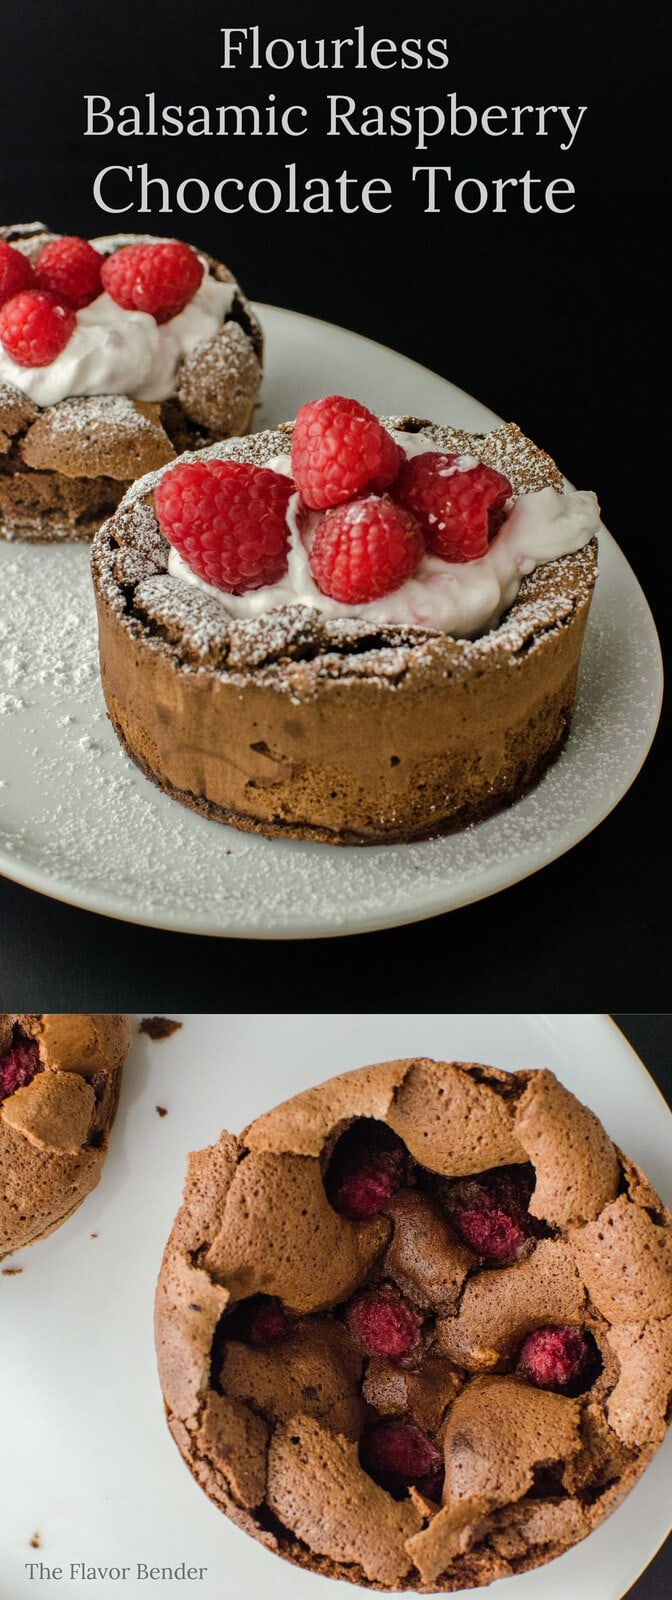 A flourless chocolate Torte with Balsamic and Raspberry - A Gluten Free, Dairy free friendly, easy and decadent dessert perfect for two! The perfect dessert to celebrate love and life.